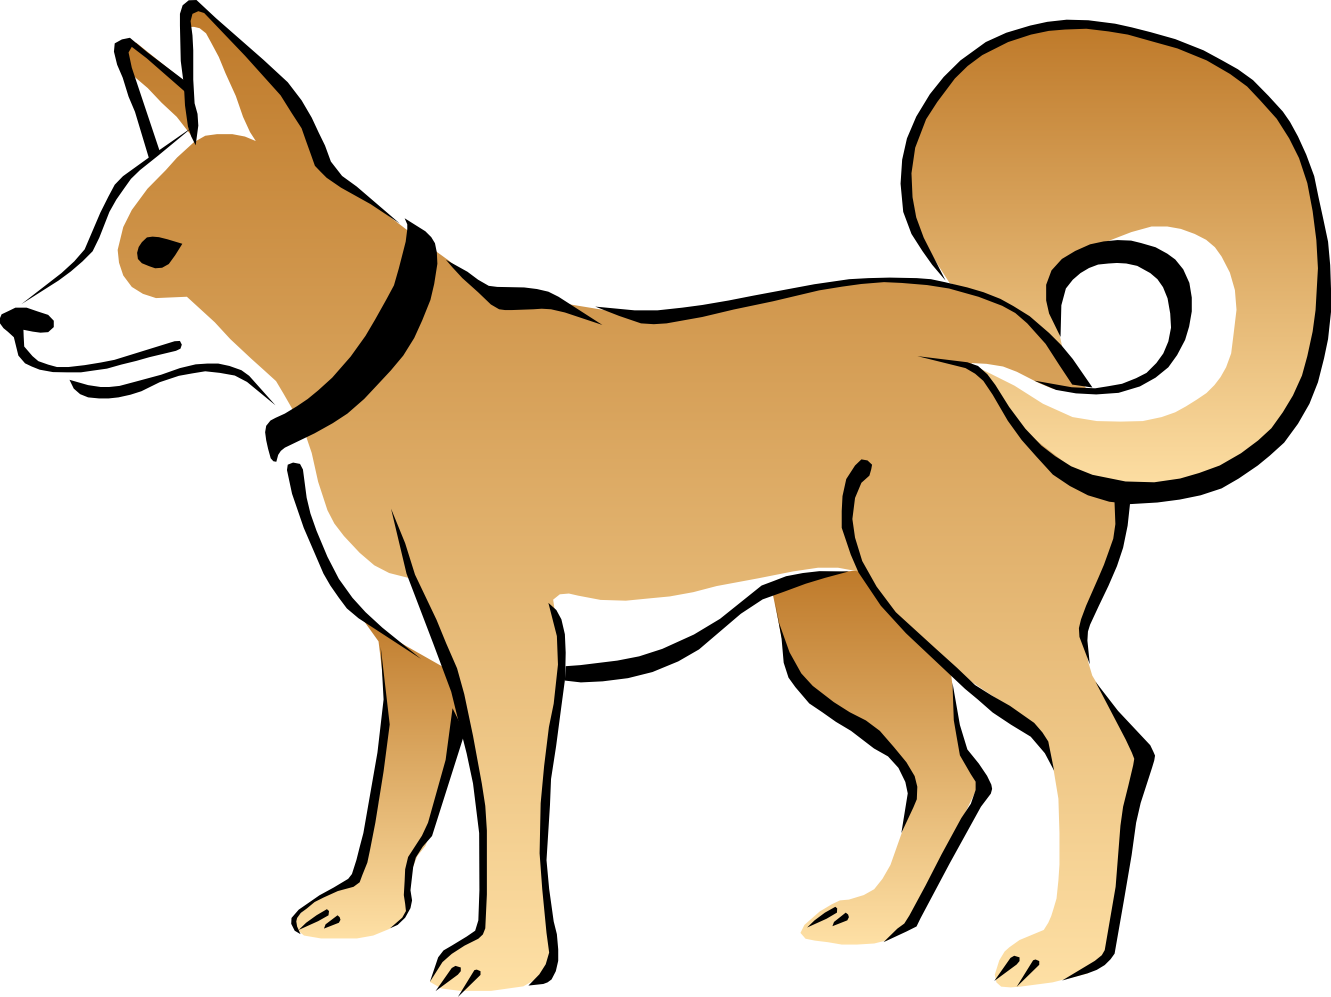 Dog with bone clipart banner transparent stock Dog png image, dogs, puppy pictures free download banner transparent stock